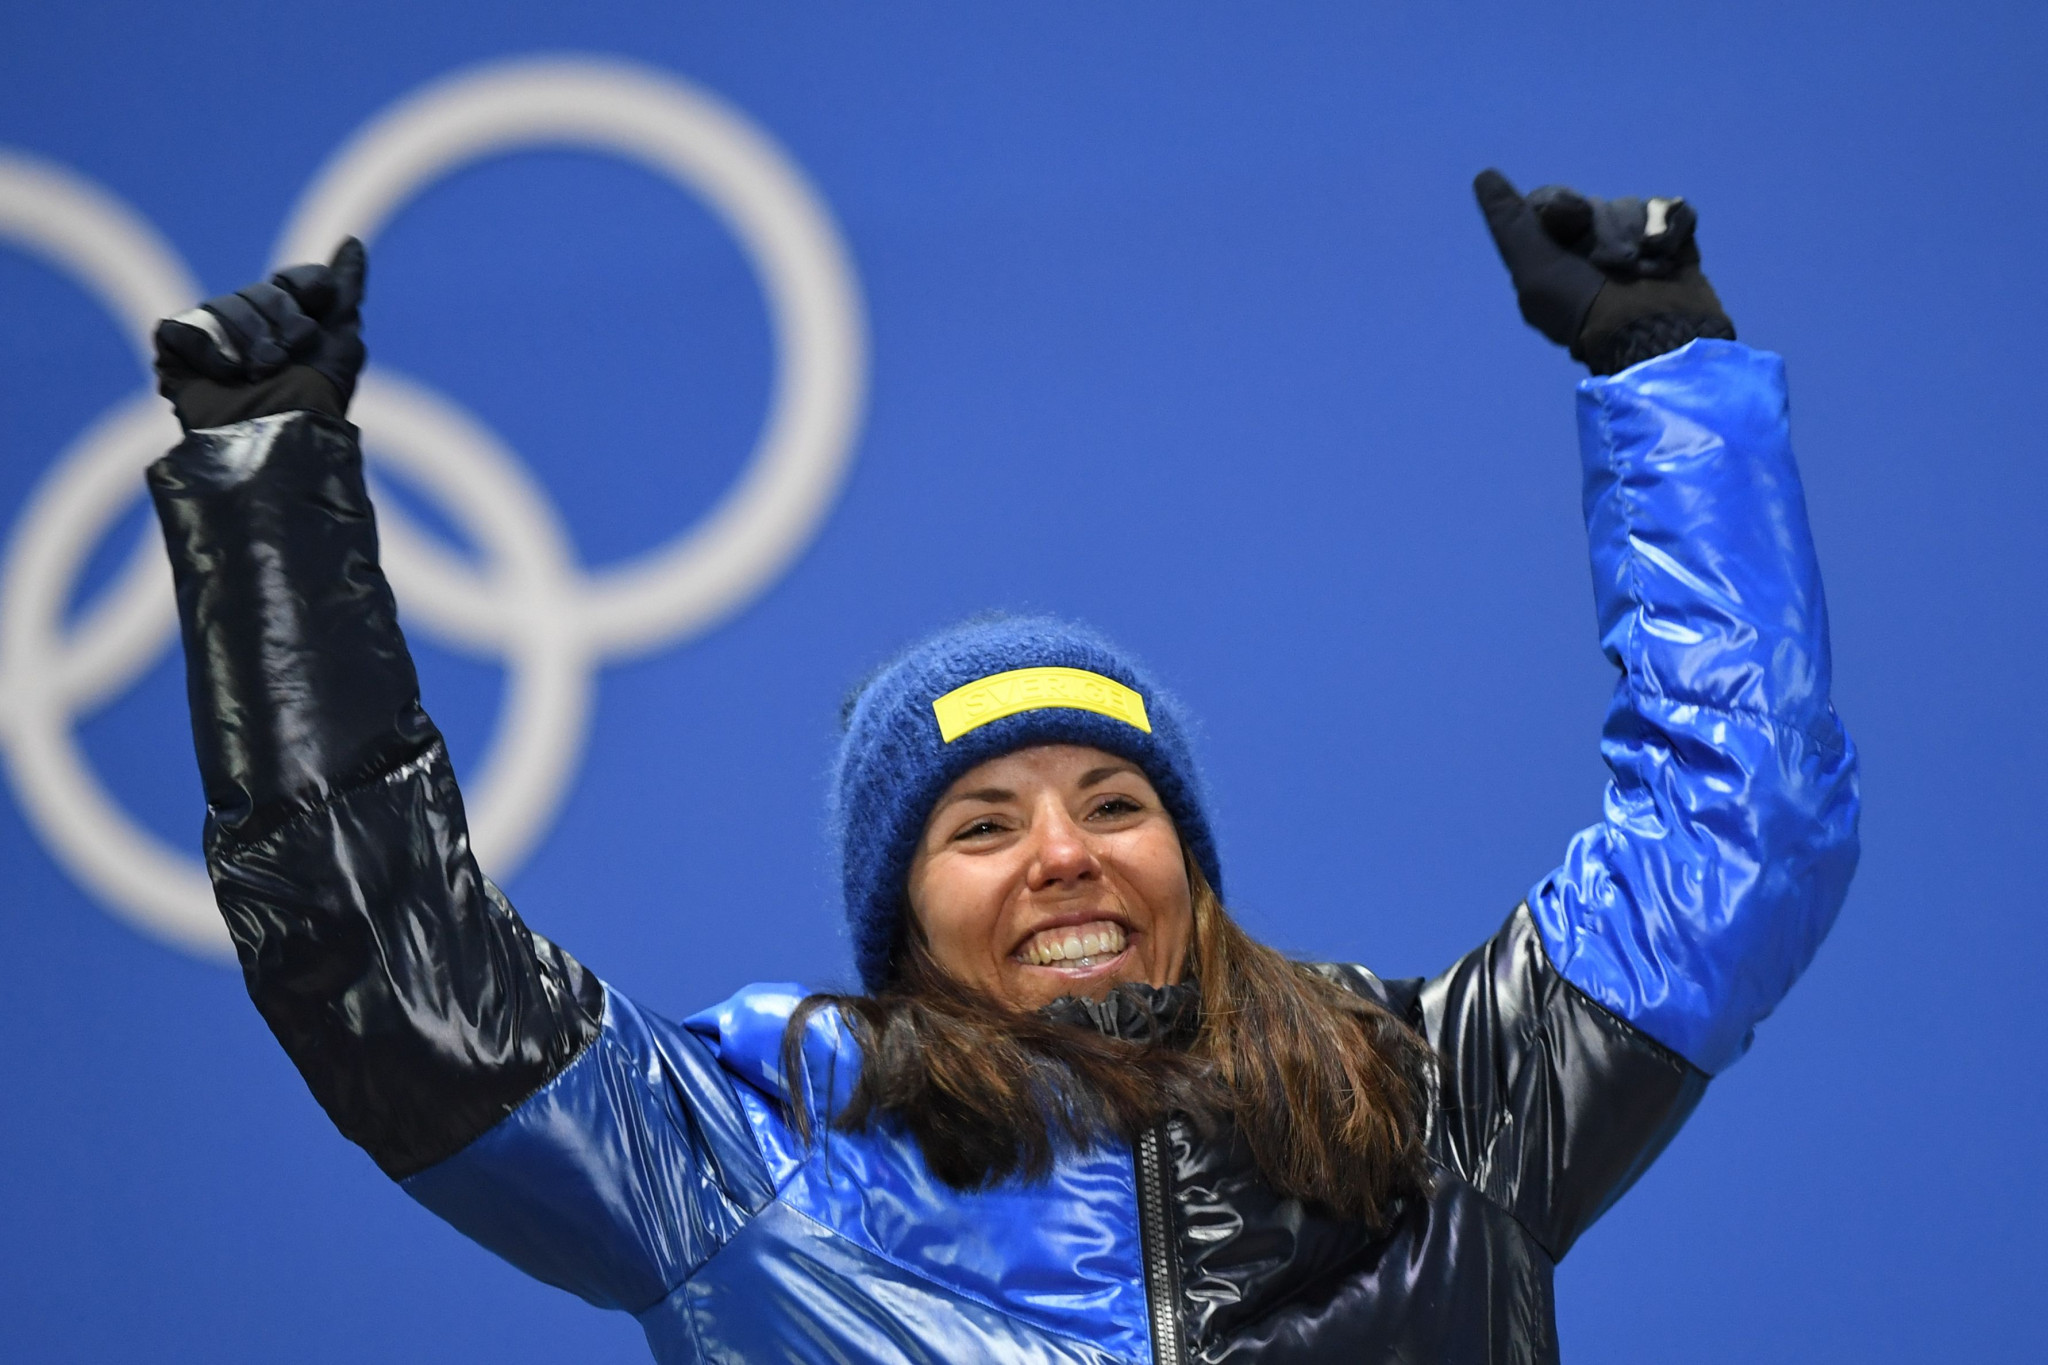 Sweden's Charlotte Kalla claimed the first gold medal of the Pyeongchang 2018 Winter Olympic Games after winning the women's 7.5 kilometres + 7.5km skiathlon event today ©Getty Images